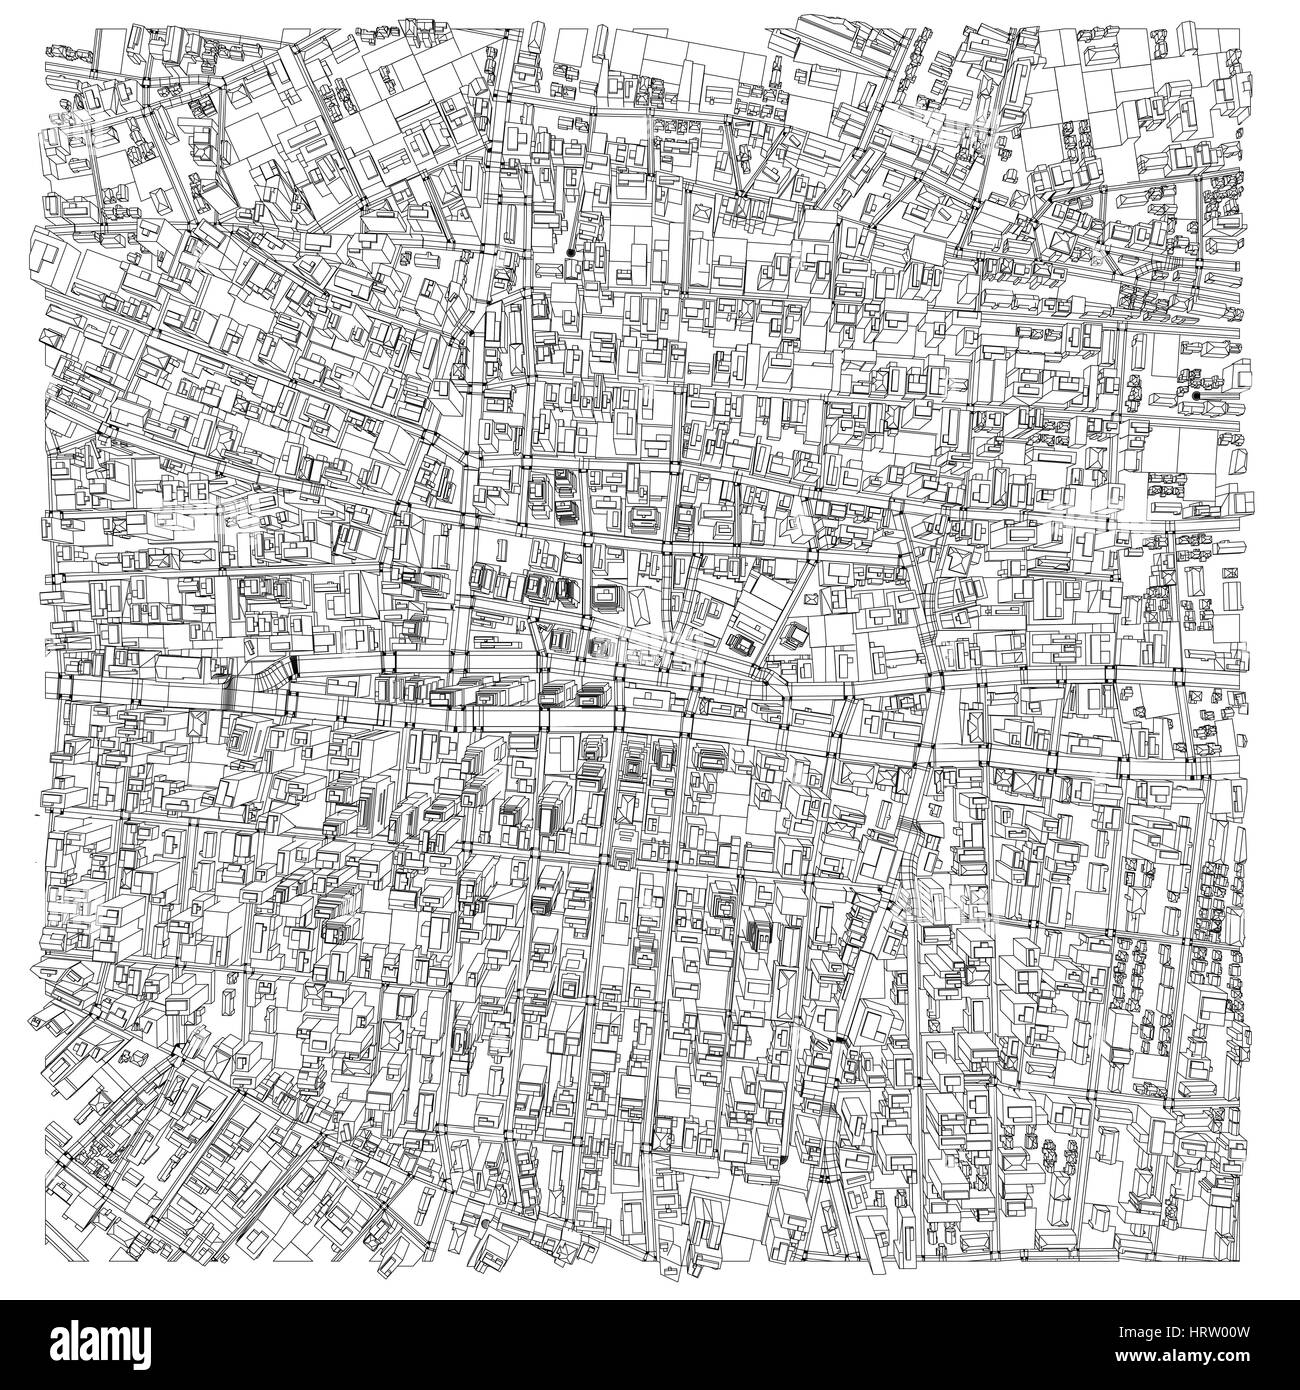 Wire frame city blueprint style vector stock vector art wire frame city blueprint style vector malvernweather Gallery